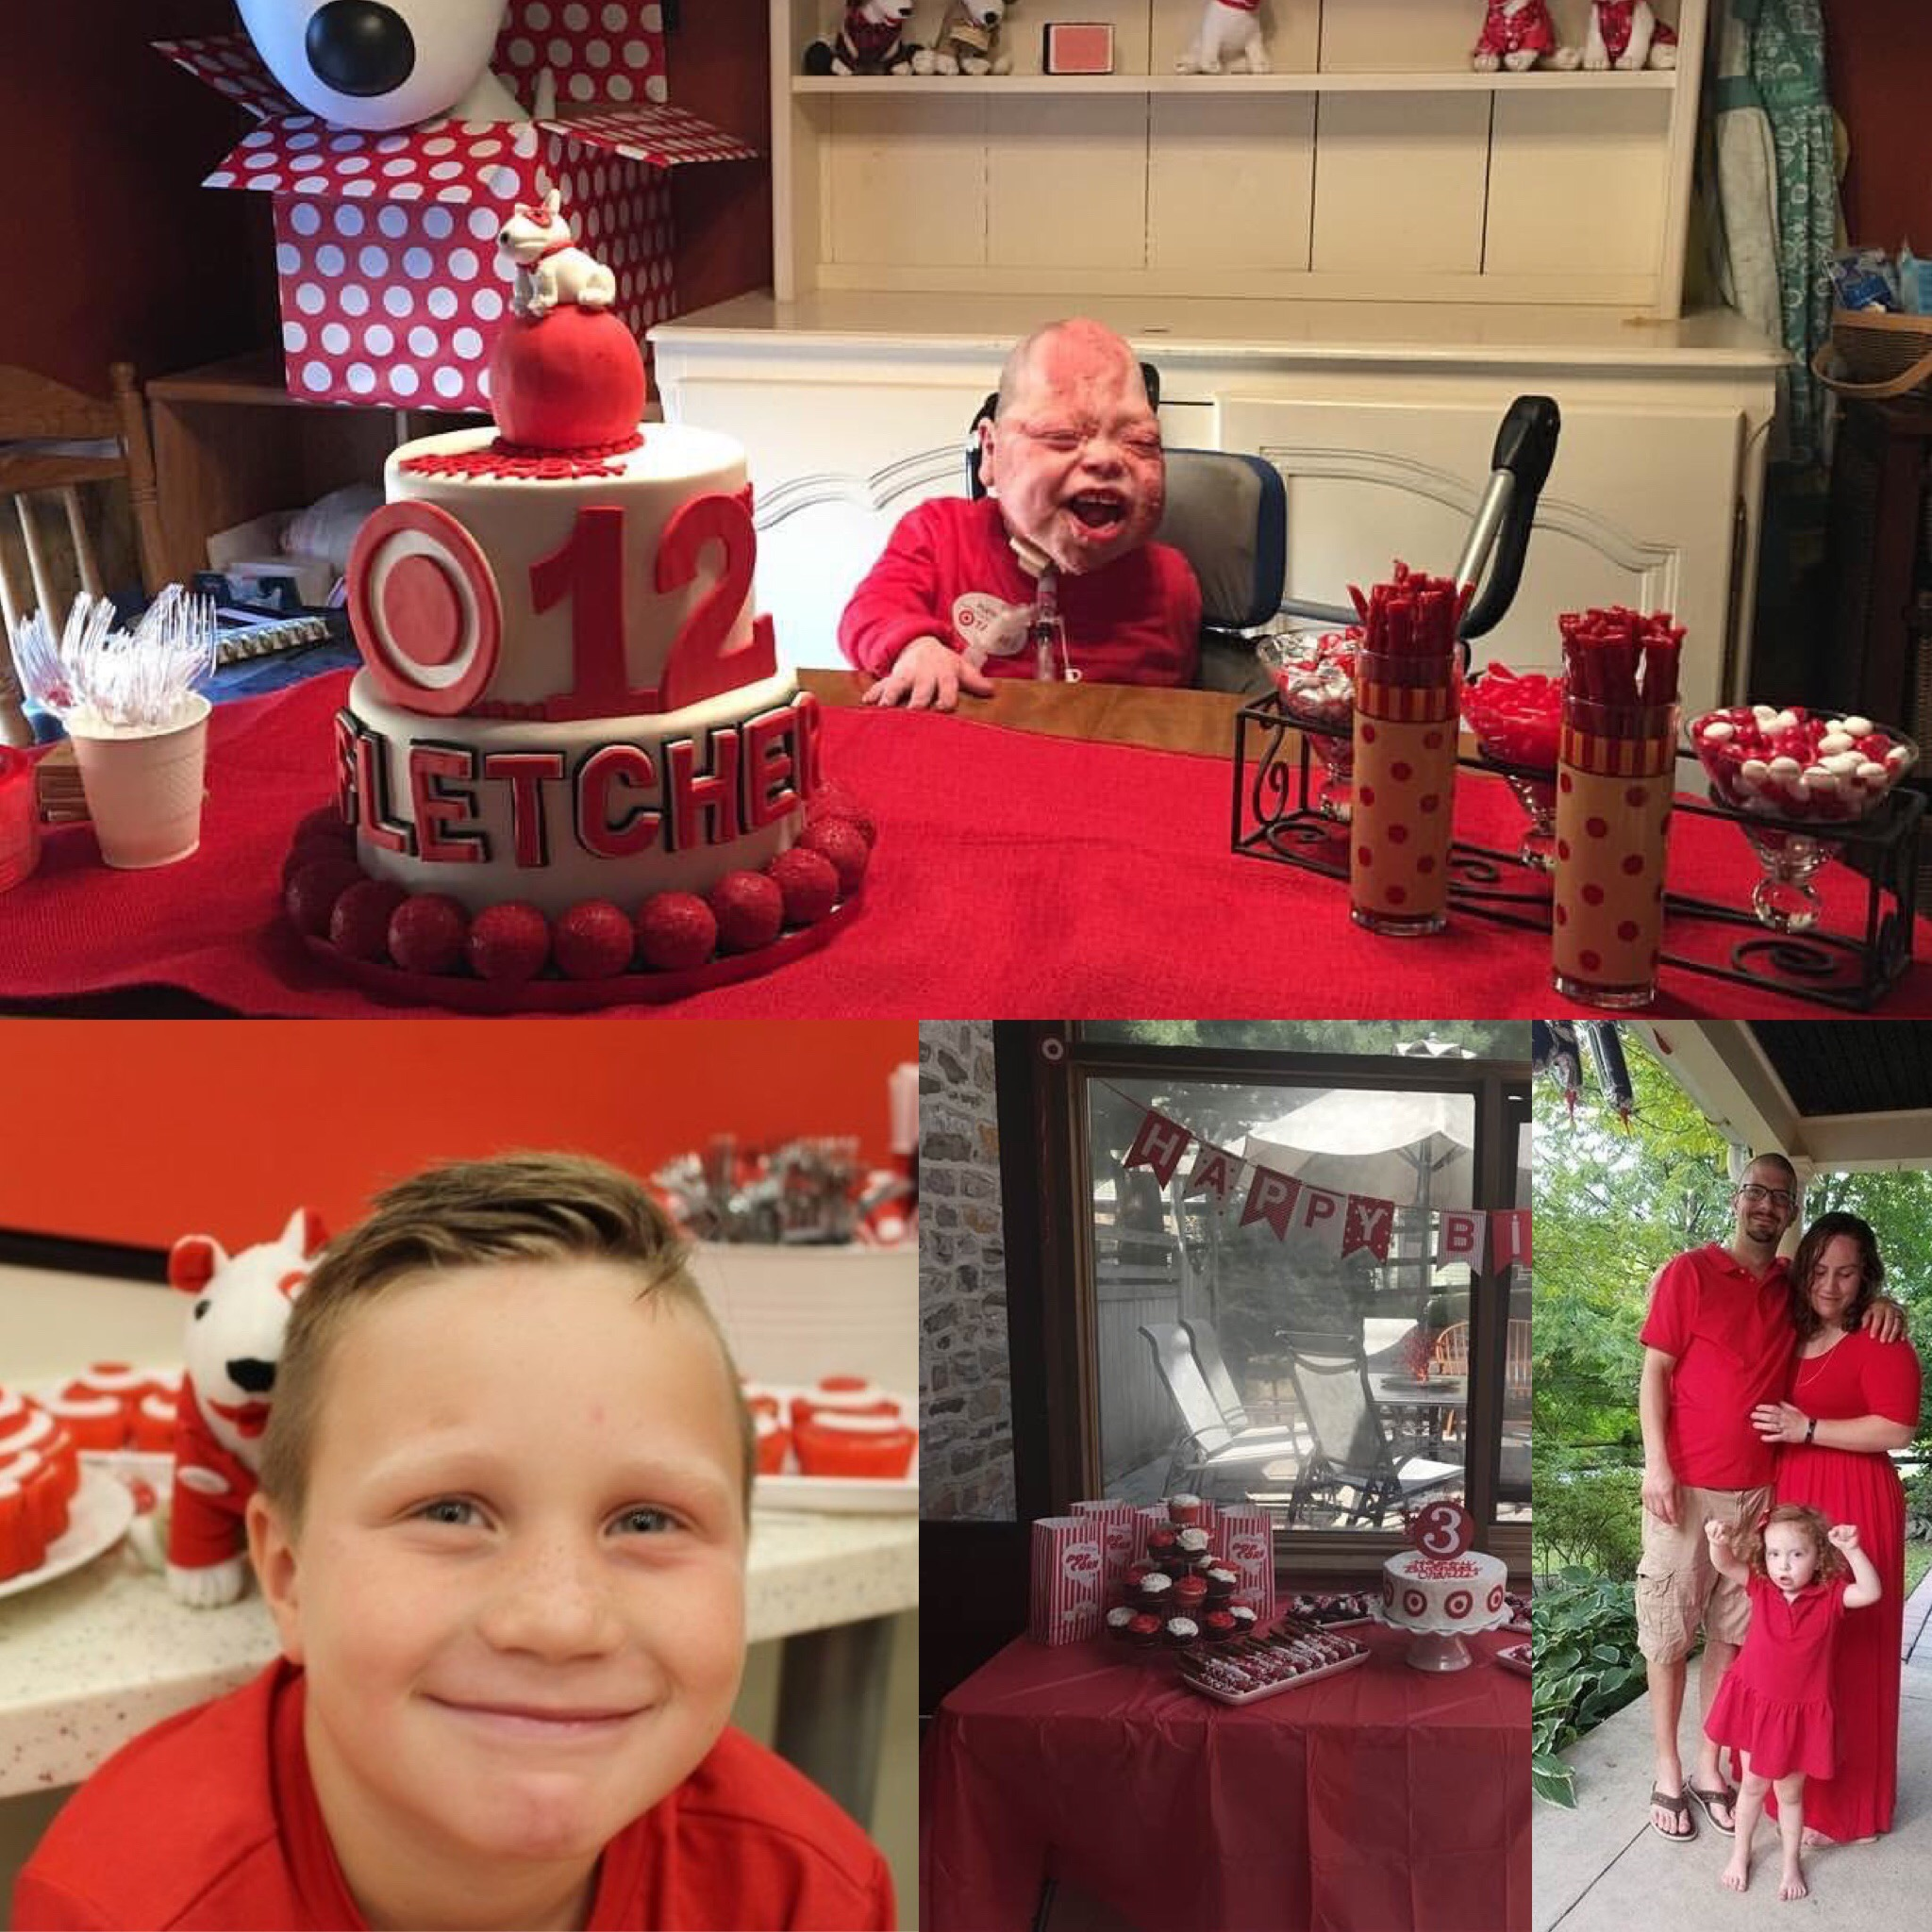 While 3 Year Old Pennsylvania Pre Schooler Charlie Kerns Target Themed Home Birthday Party Went Viral Last Week It Turns Out She Isnt The First But Is